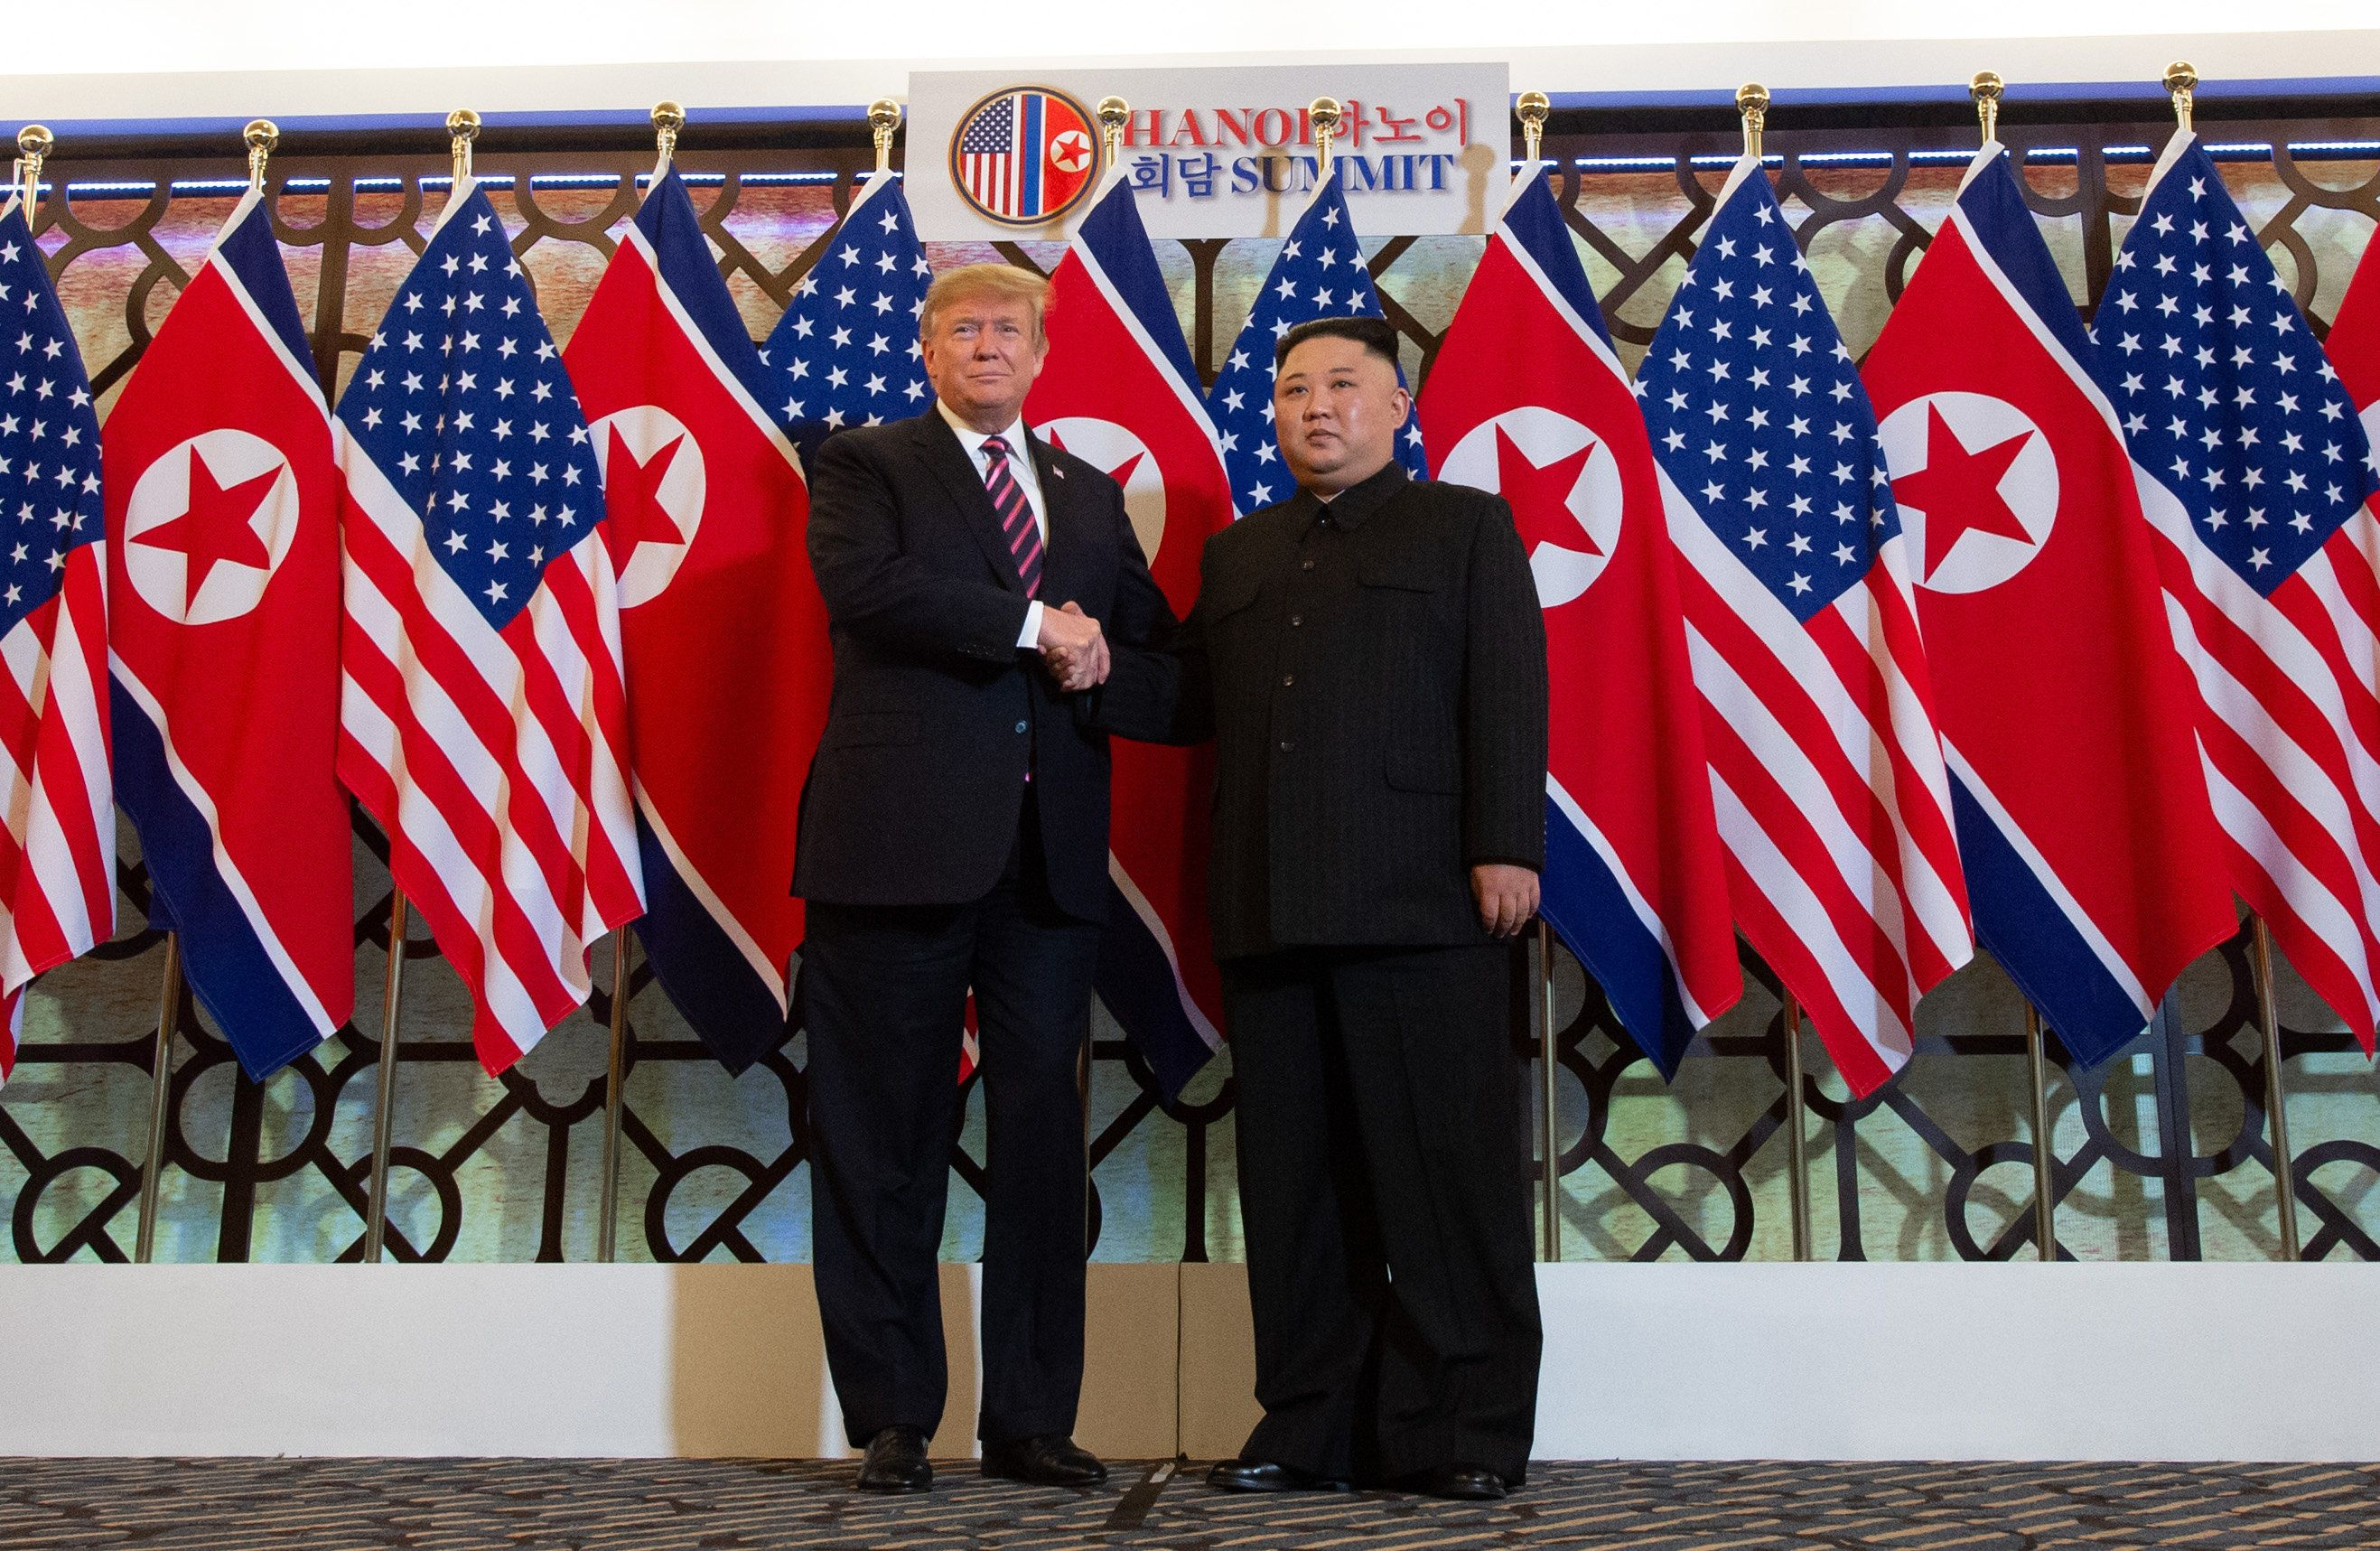 TOPSHOT - US President Donald Trump (L) shakes hands with North Korea's leader Kim Jong Un before a meeting at the Sofitel Legend Metropole hotel in Hanoi on February 27, 2019. (Photo by Saul LOEB / AFP)        (Photo credit should read SAUL LOEB/AFP/Getty Images)